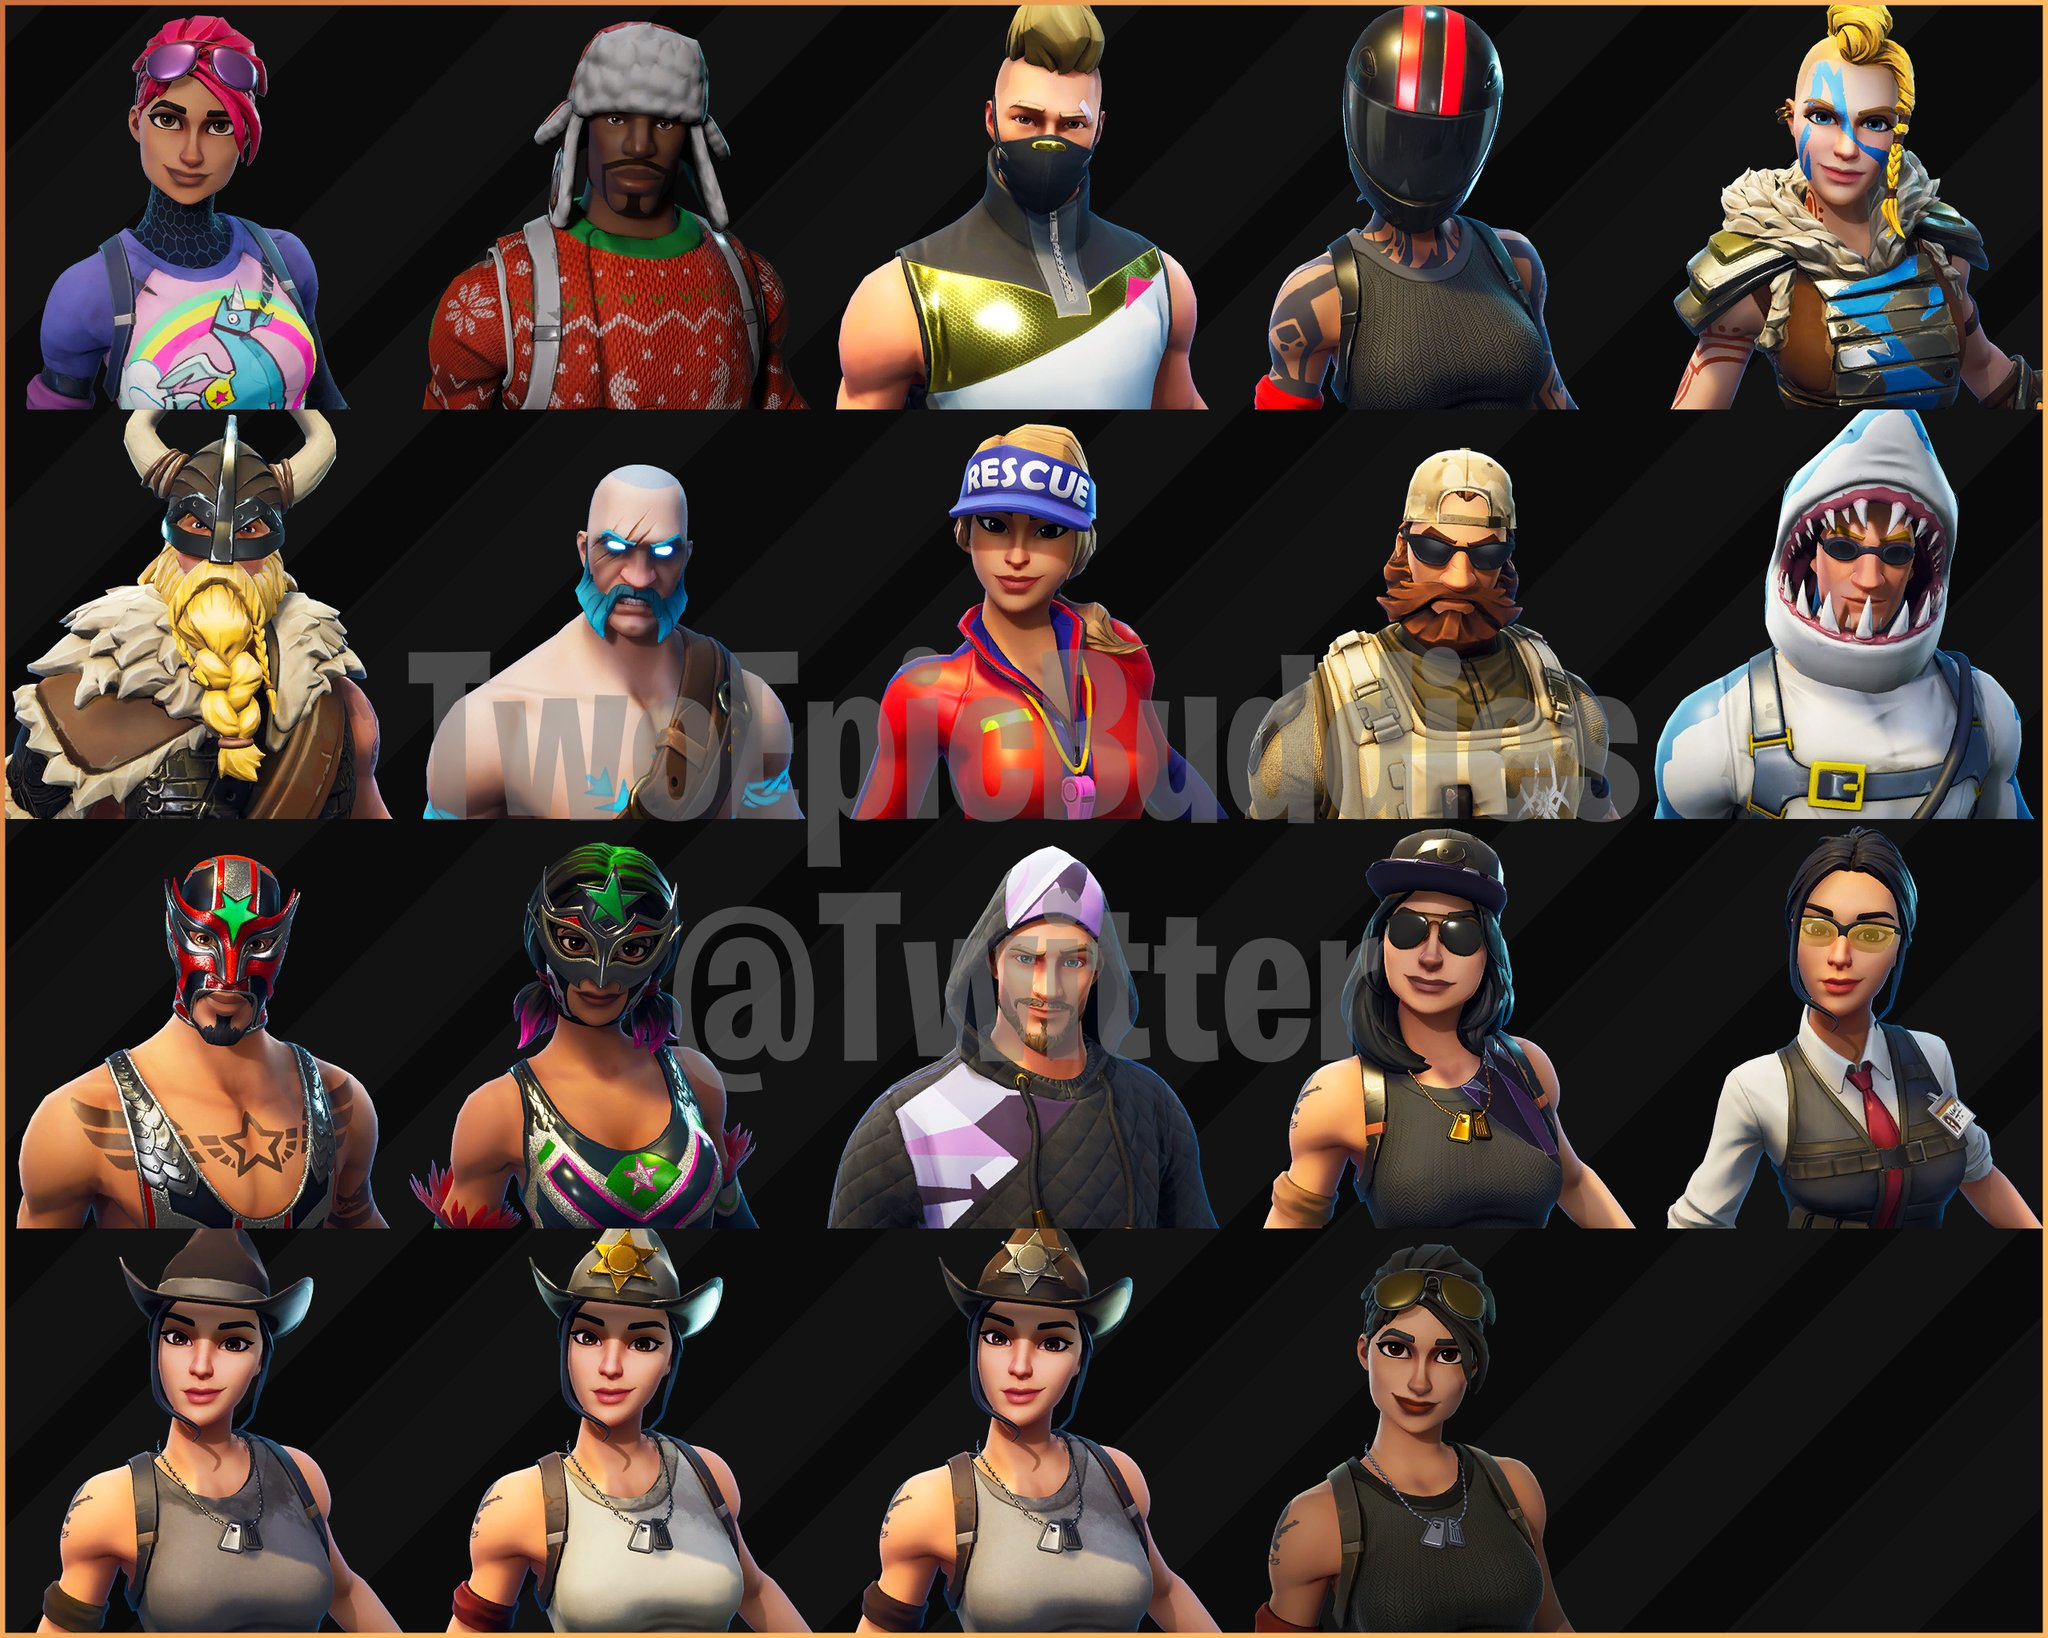 Fortnite Season 5 Skins Gliders Emotes And Battle Pass Unlocks Leaked